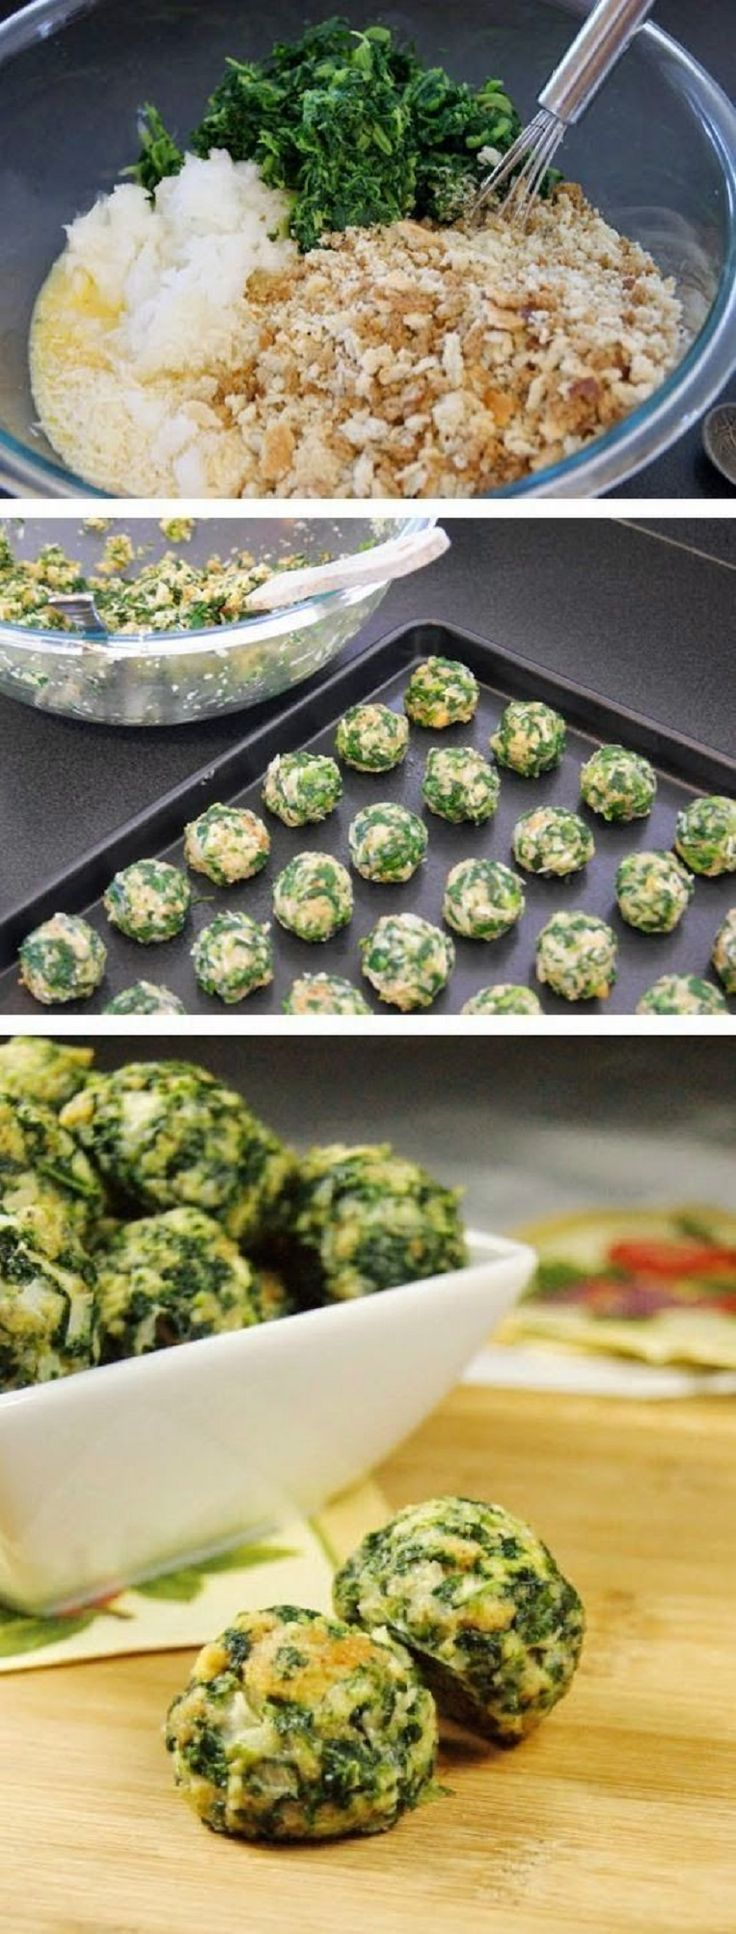 Spinach Balls - 16 Healthy Spring Recipes for Kids | GleamItUp